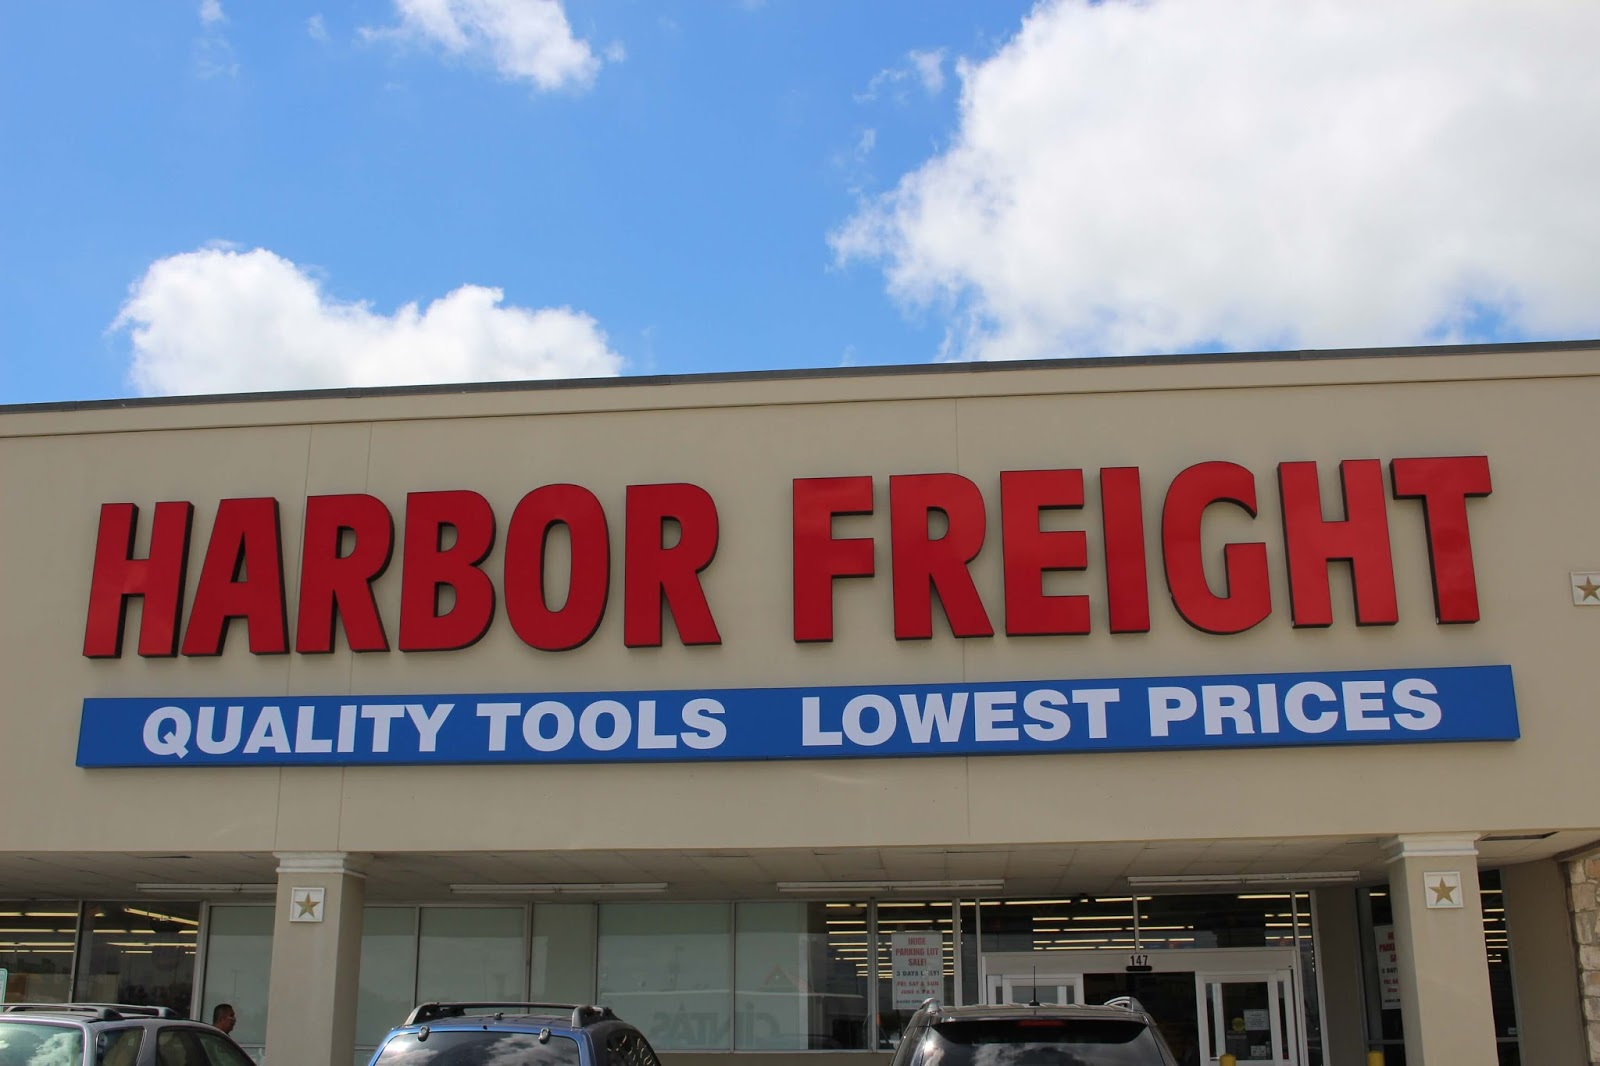 Harbor Freight Class Action Settlement March 2017: $23 Million In ...